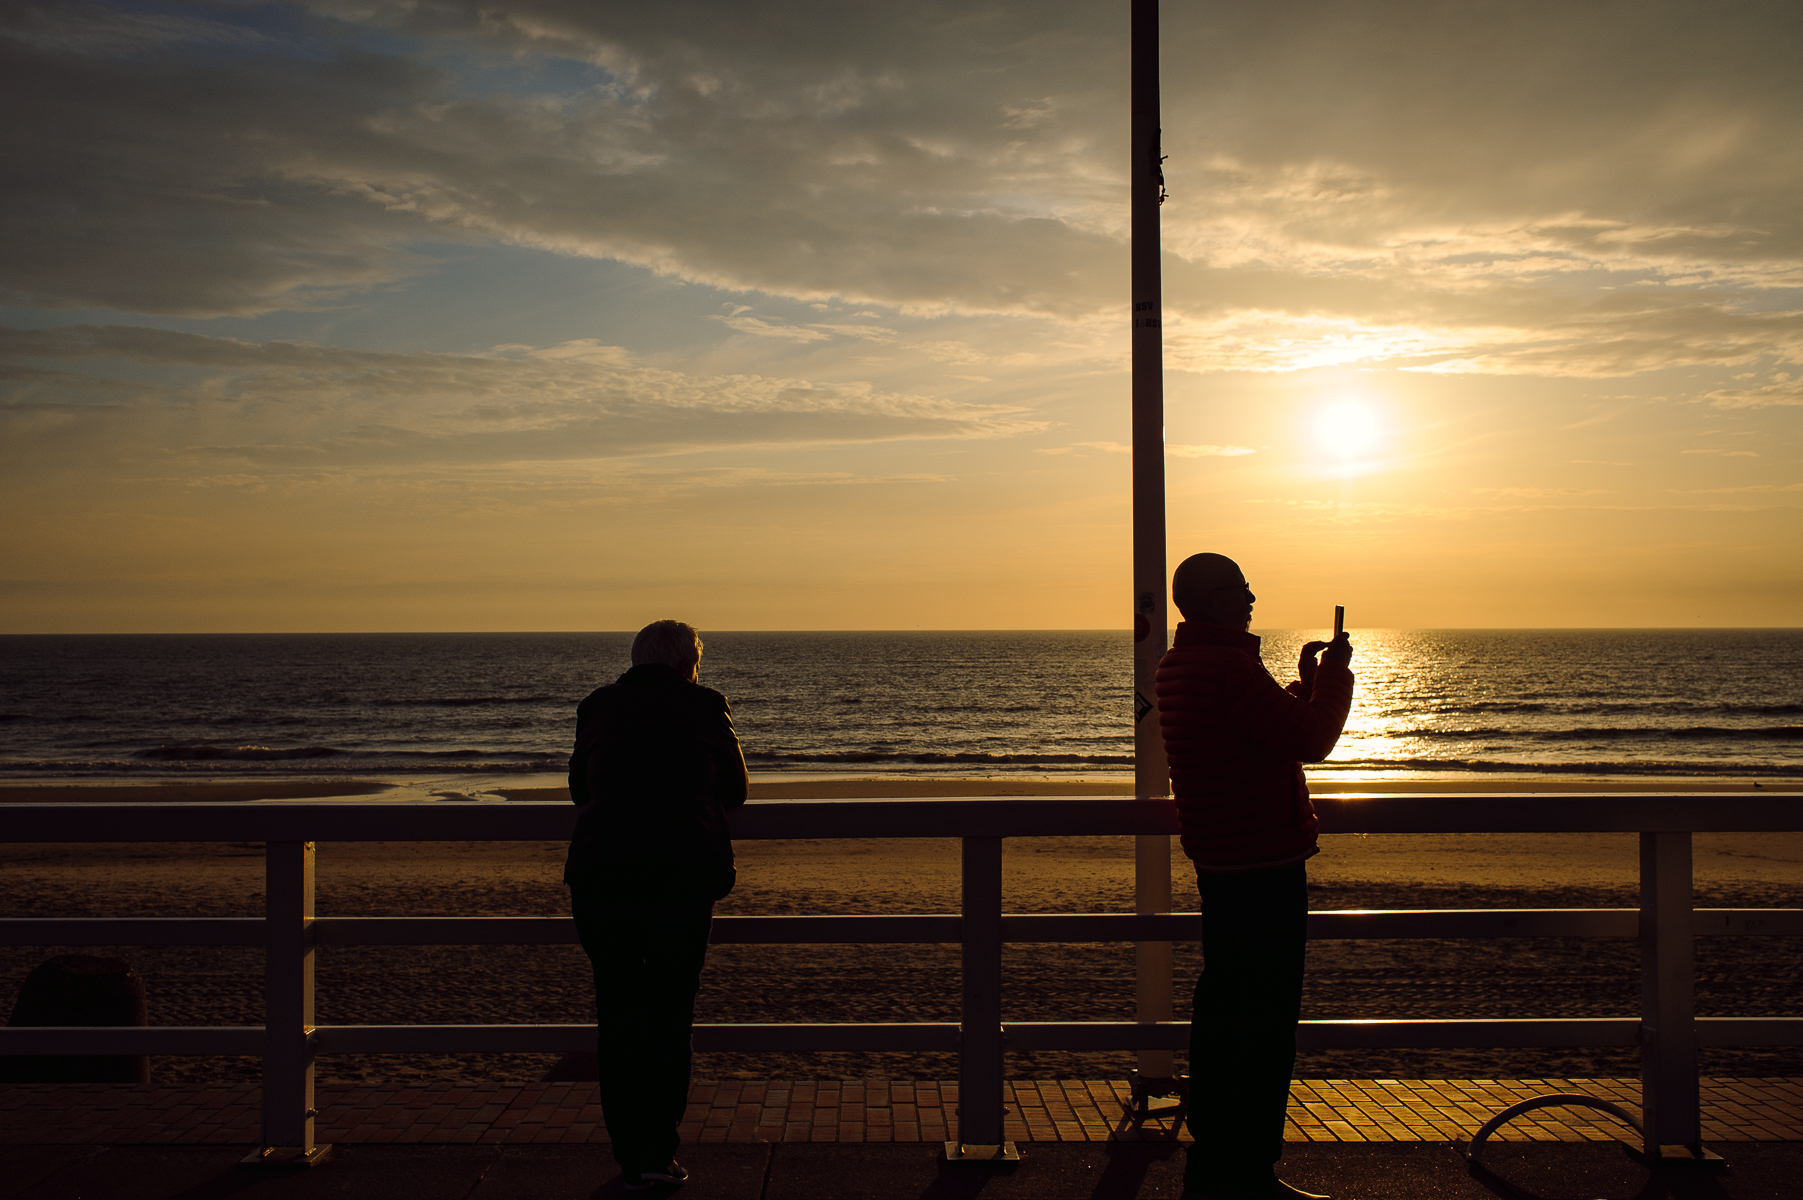 While mom watches the sunset, dad takes a picture of the beach panorama on the promenade in Westerland. Sylt, Germany, June 16, 2018.